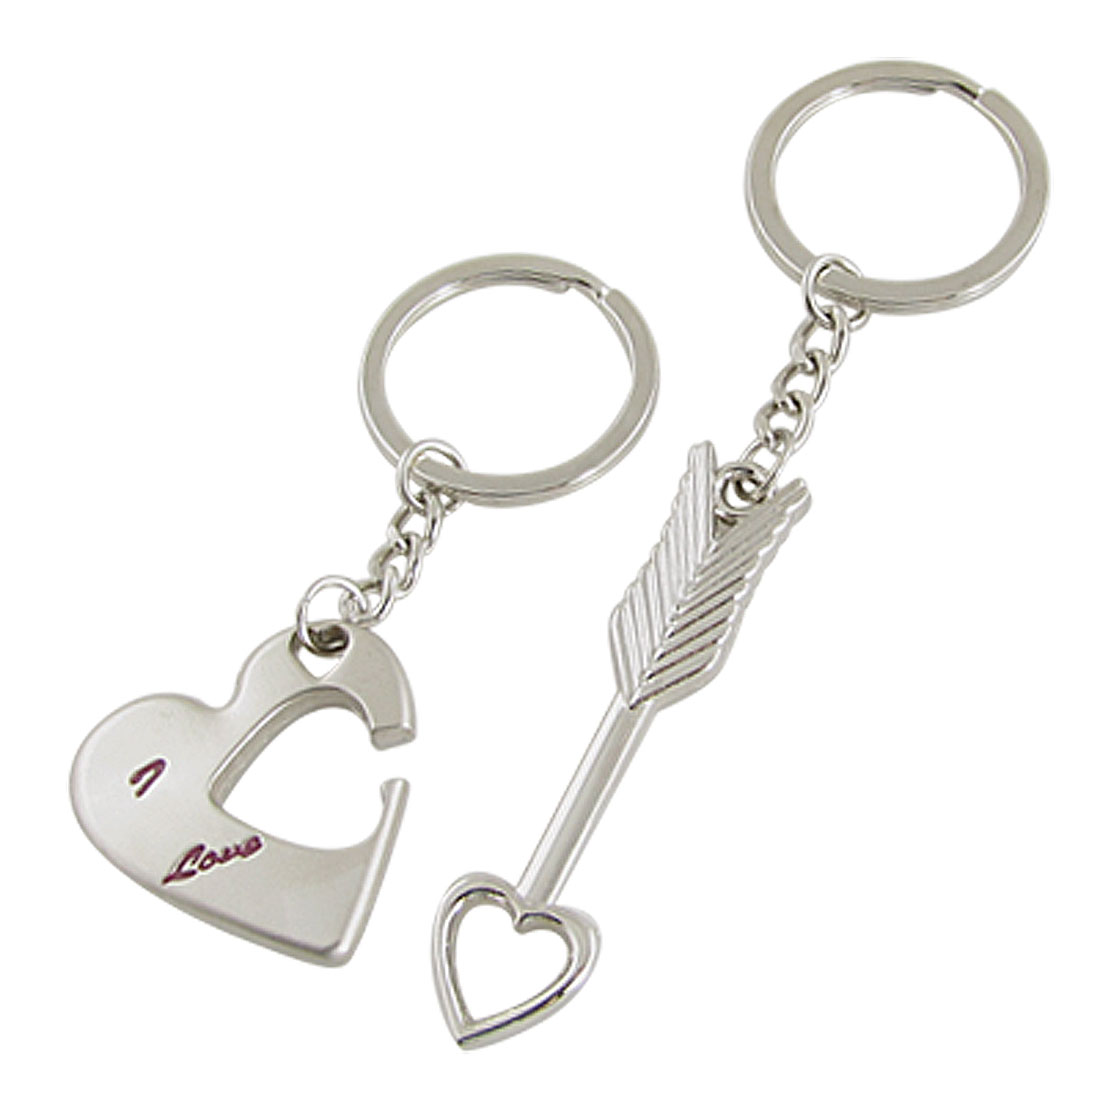 Couples I Love You Heart Cupid Pendants Key Ring Keychain